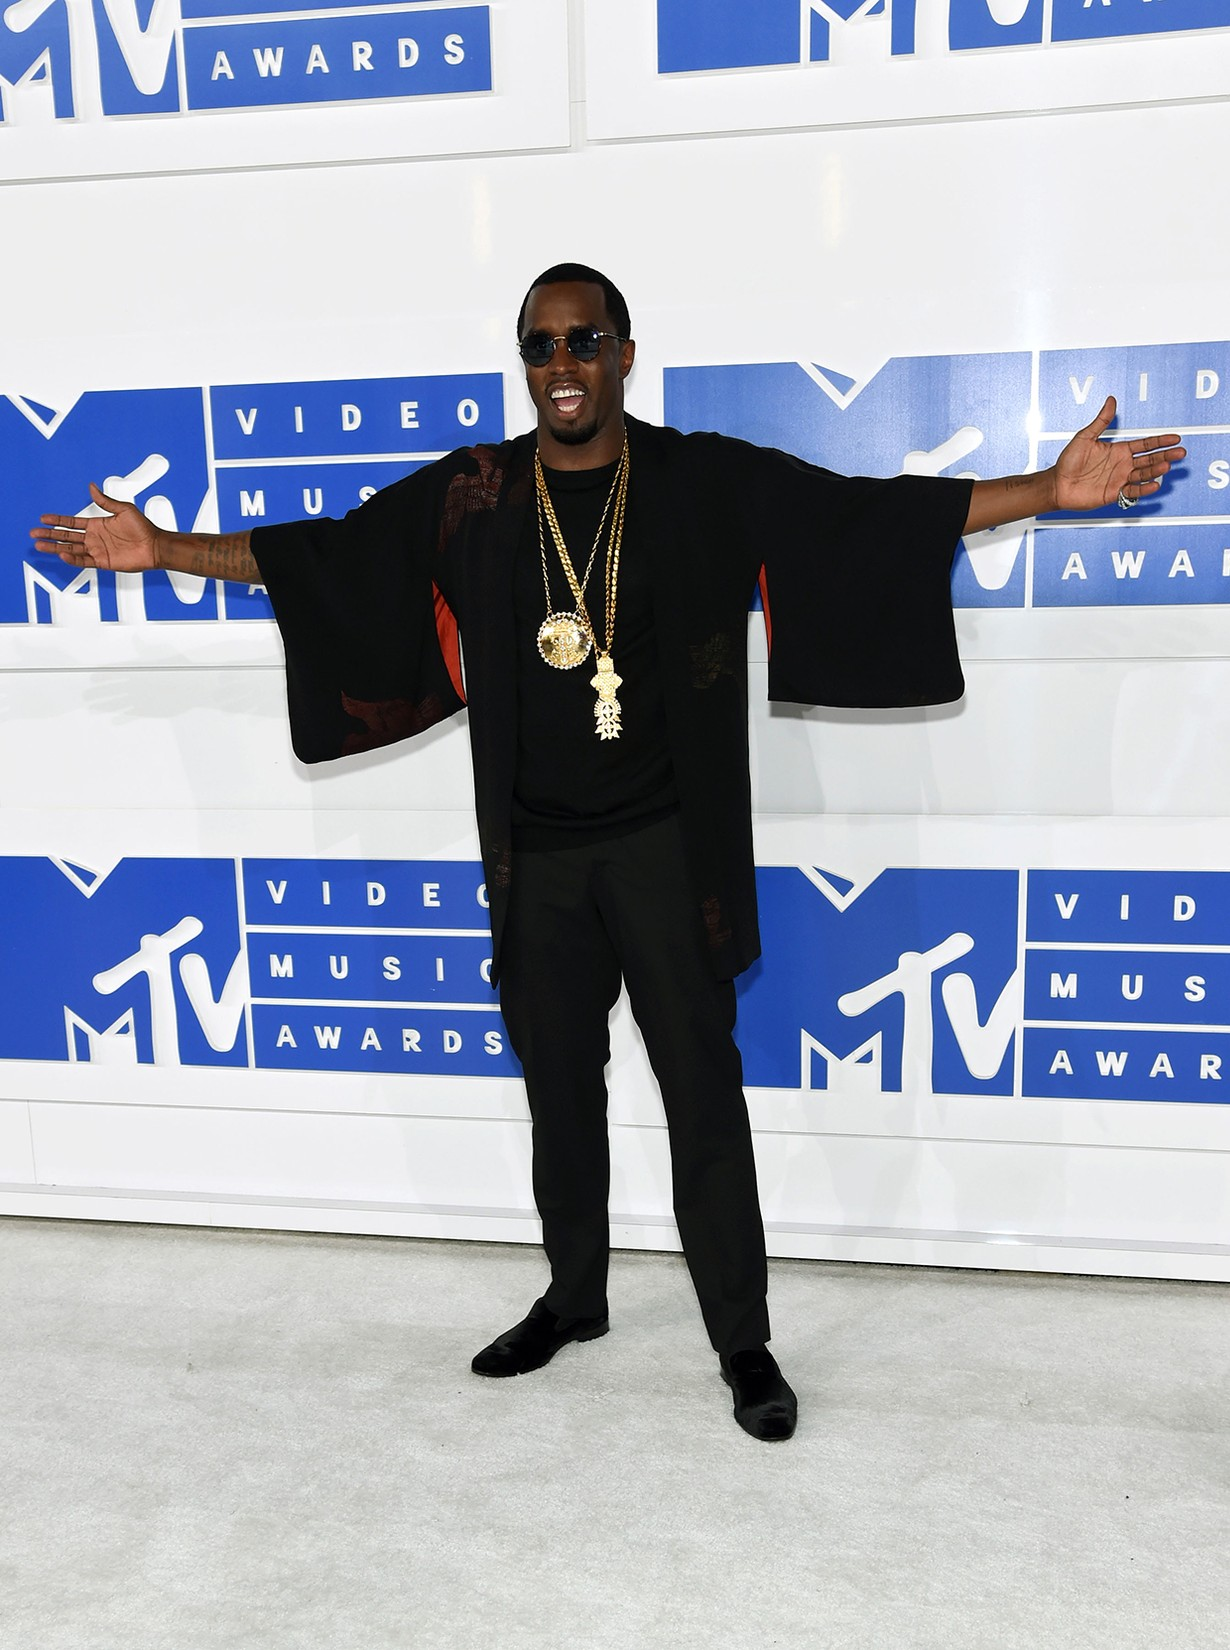 Sean Diddy Combs attends the 2016 MTV Video Music Awards